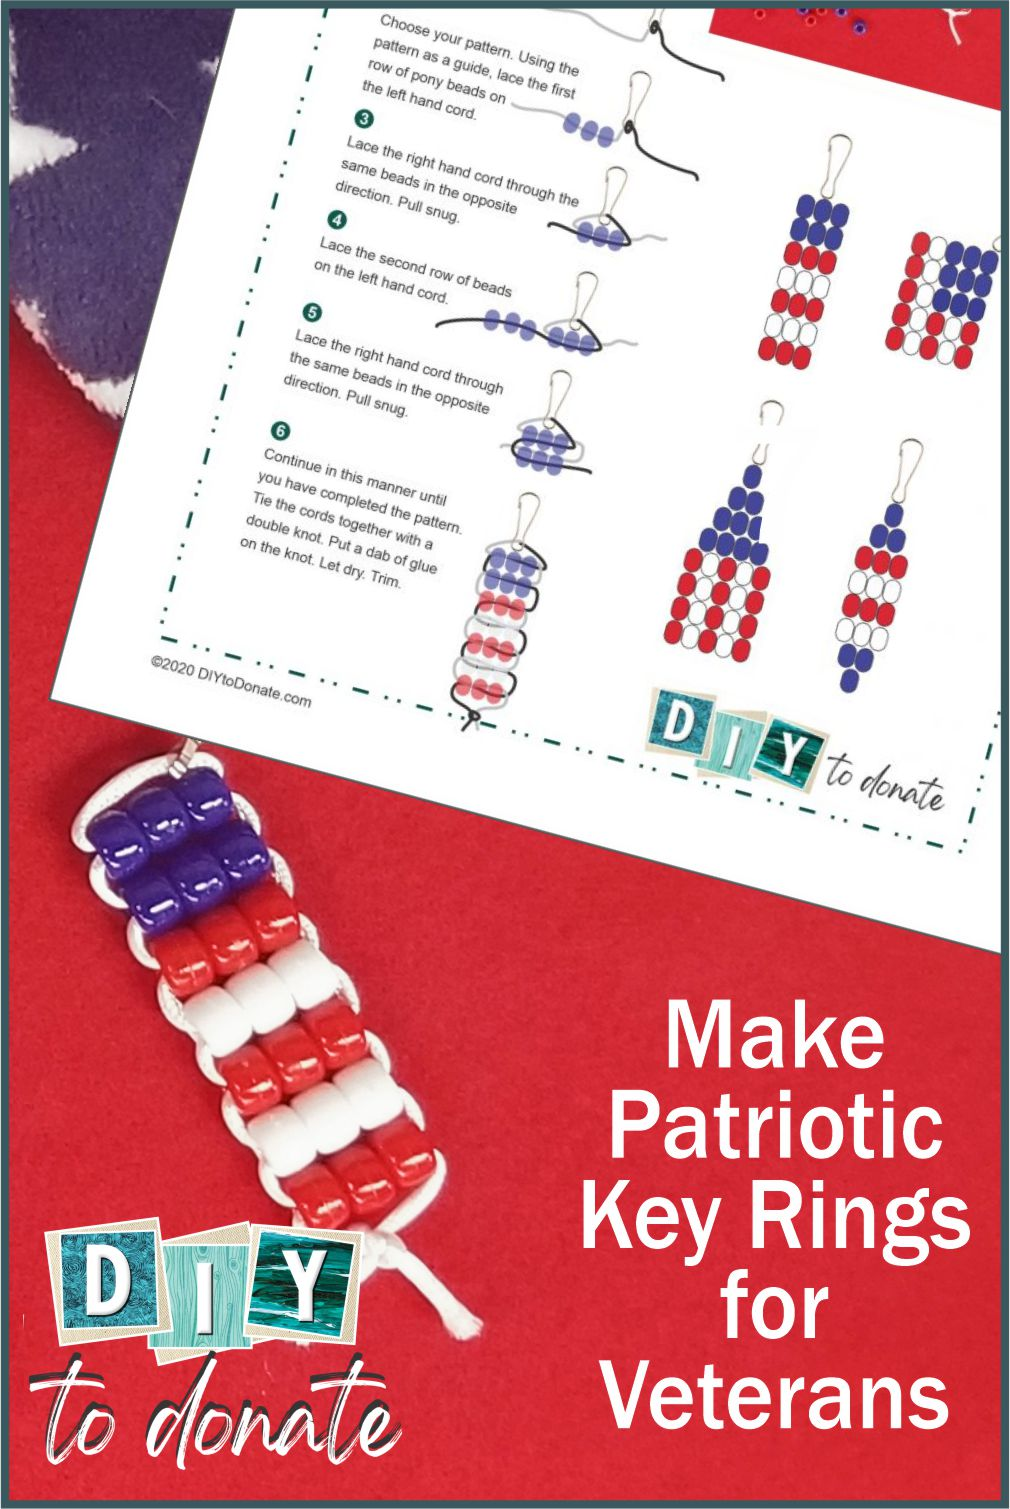 Looking for something the kids can make for our military? Four styles to choose from with a free printable PDF instruction page. #diytodonate #diymilitary #diy #donatetothemilitary #keyrings #diykeyrings #freeprintables #printable #freediyprintable